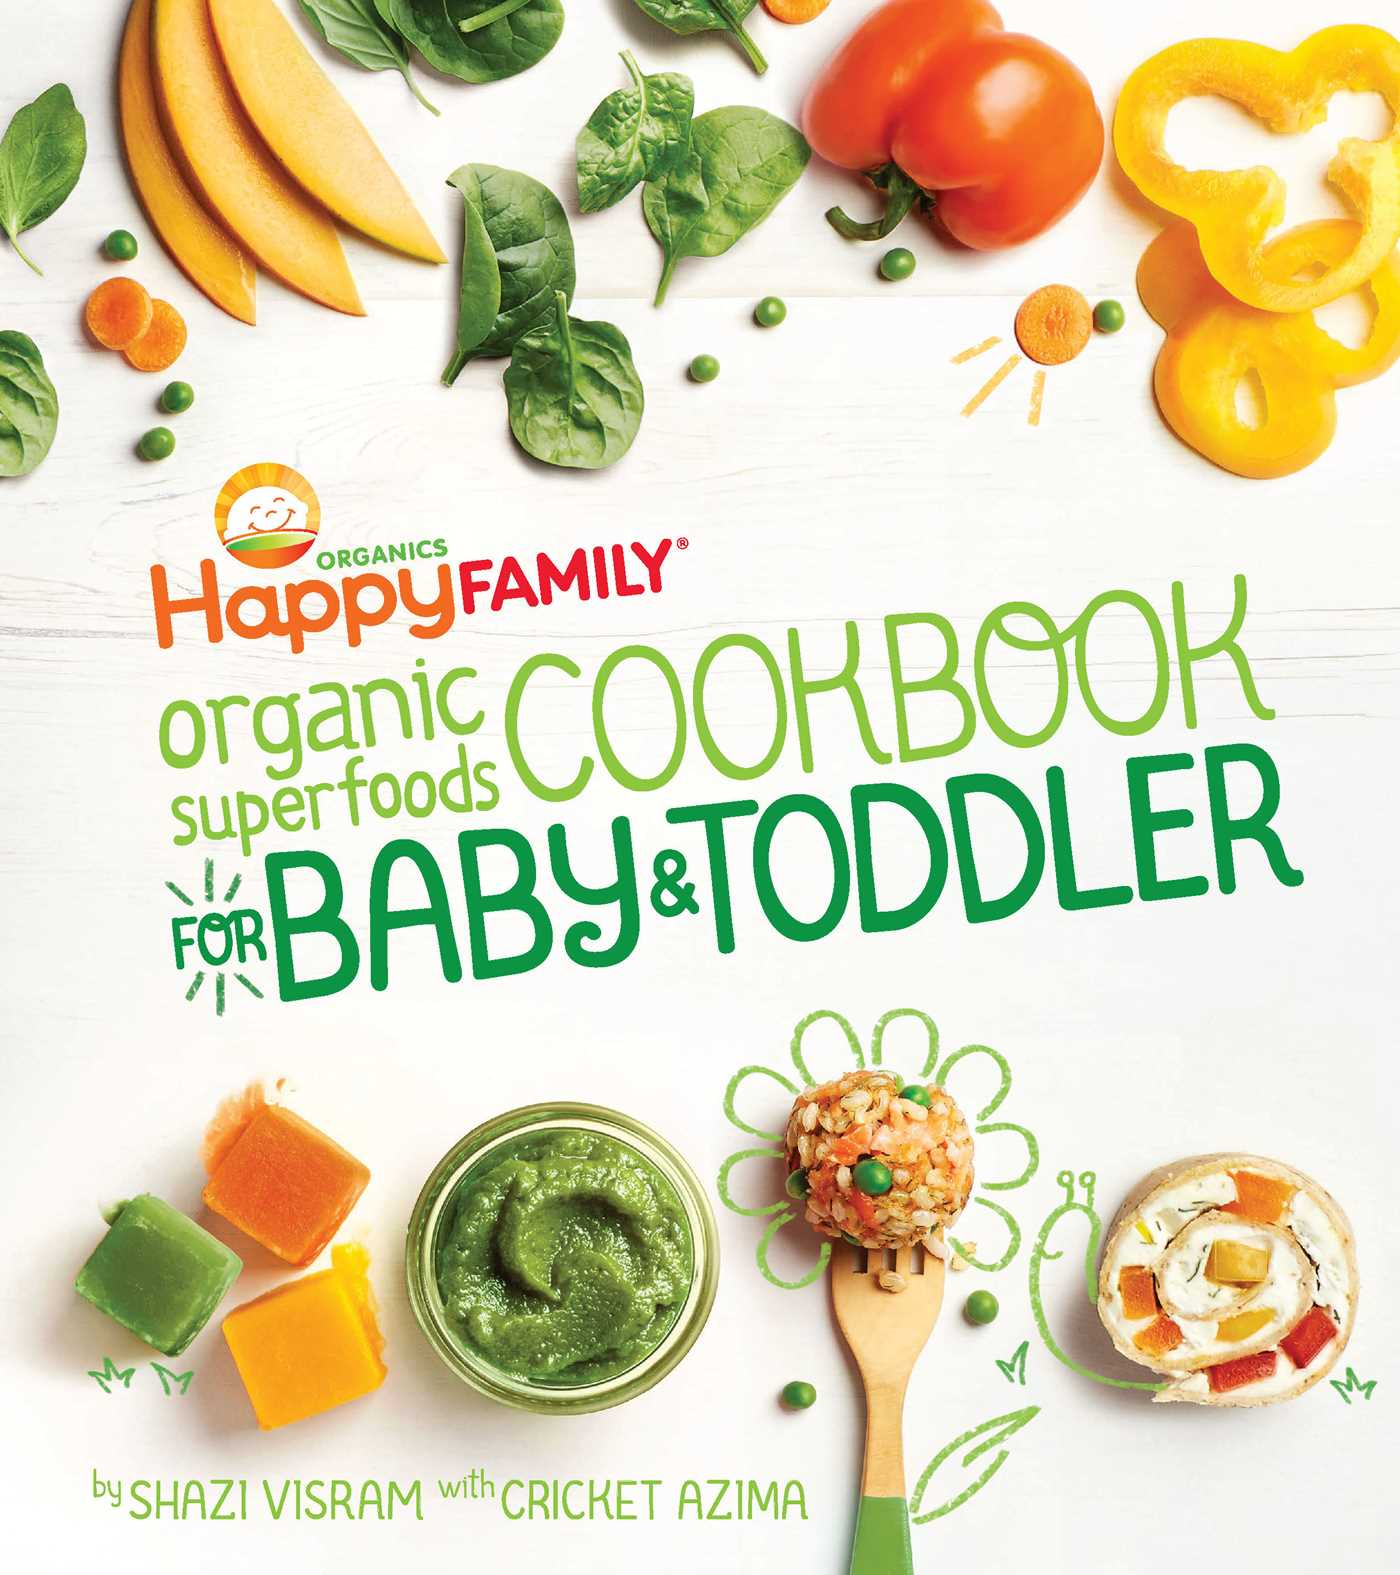 The happy family organic superfoods cookbook for baby toddler the happy family organic superfoods cookbook for baby toddler 9781681880495 hr forumfinder Images